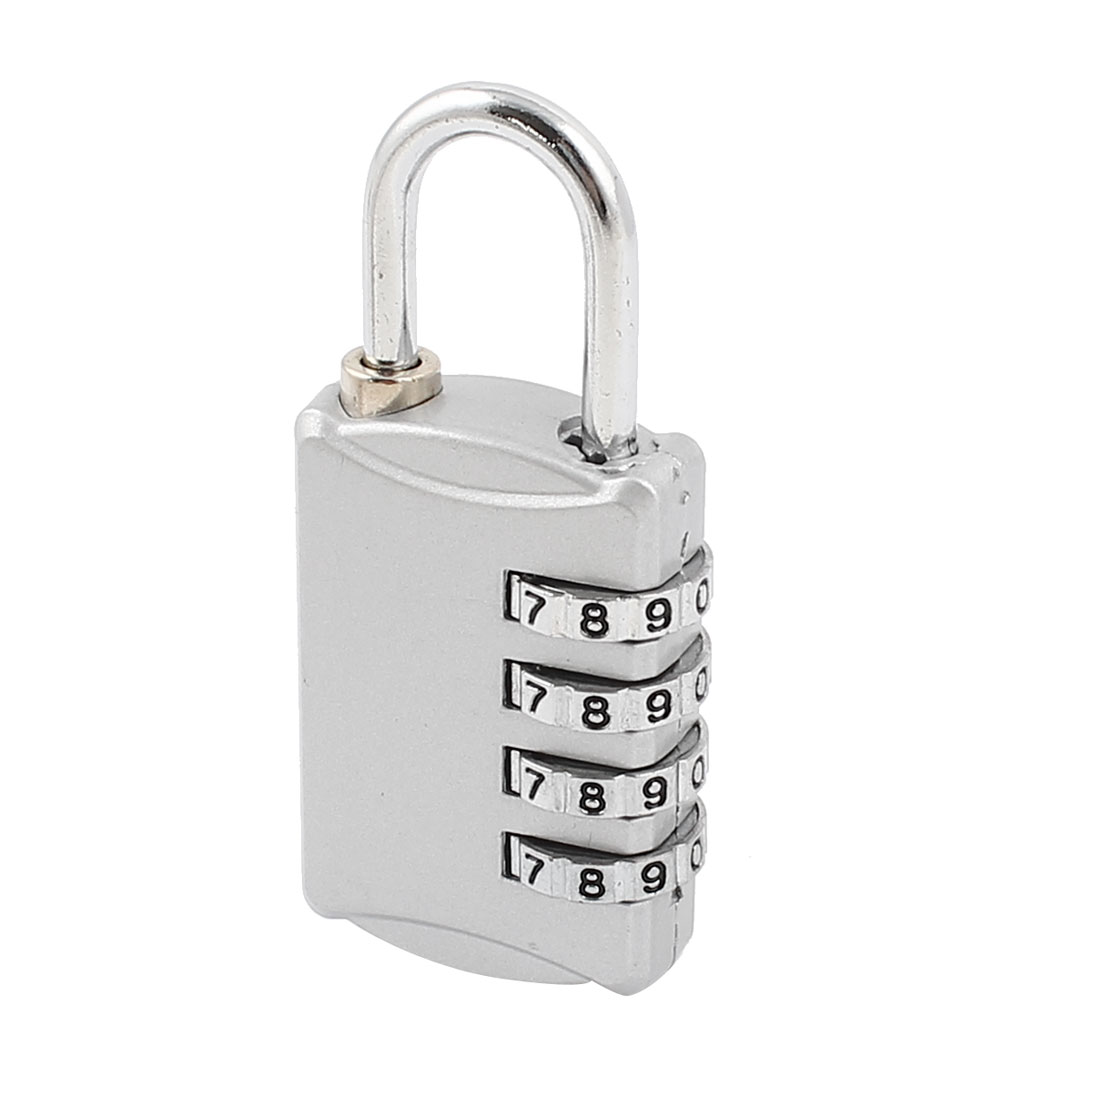 Gray 4 Digital Security Resettable Luggage Combination Password Padlock Lock